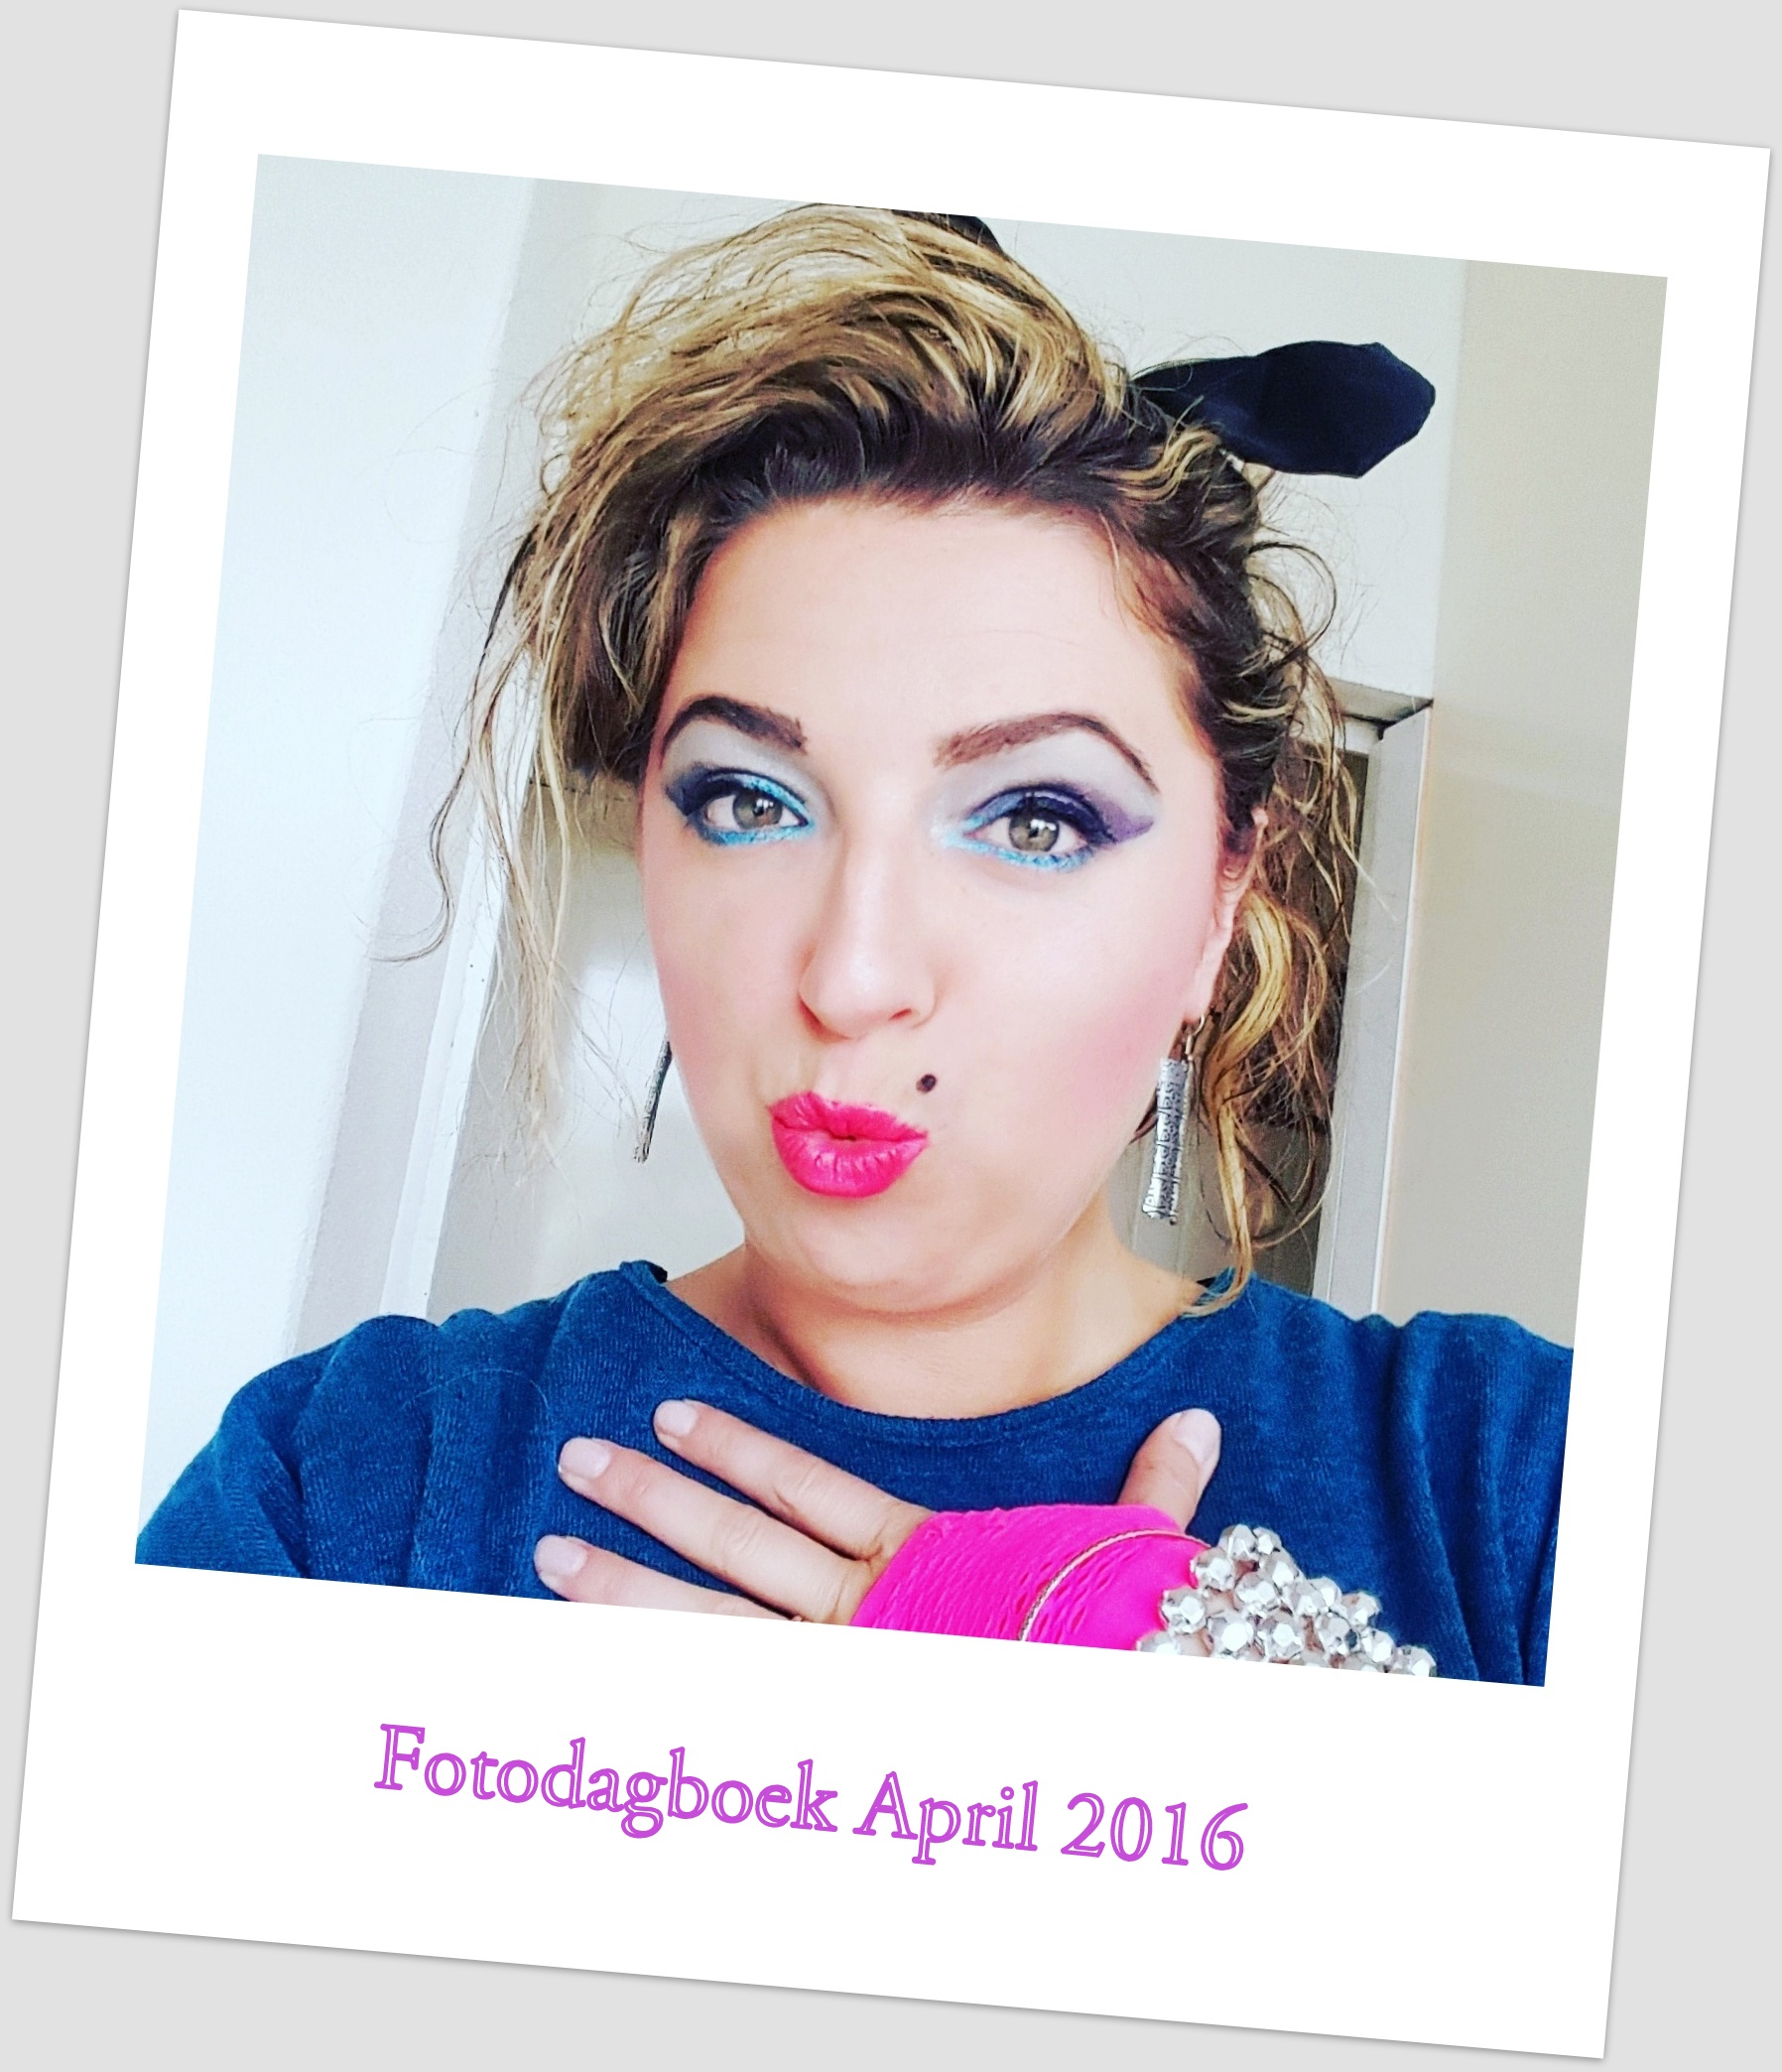 Fotodagboek April 2016